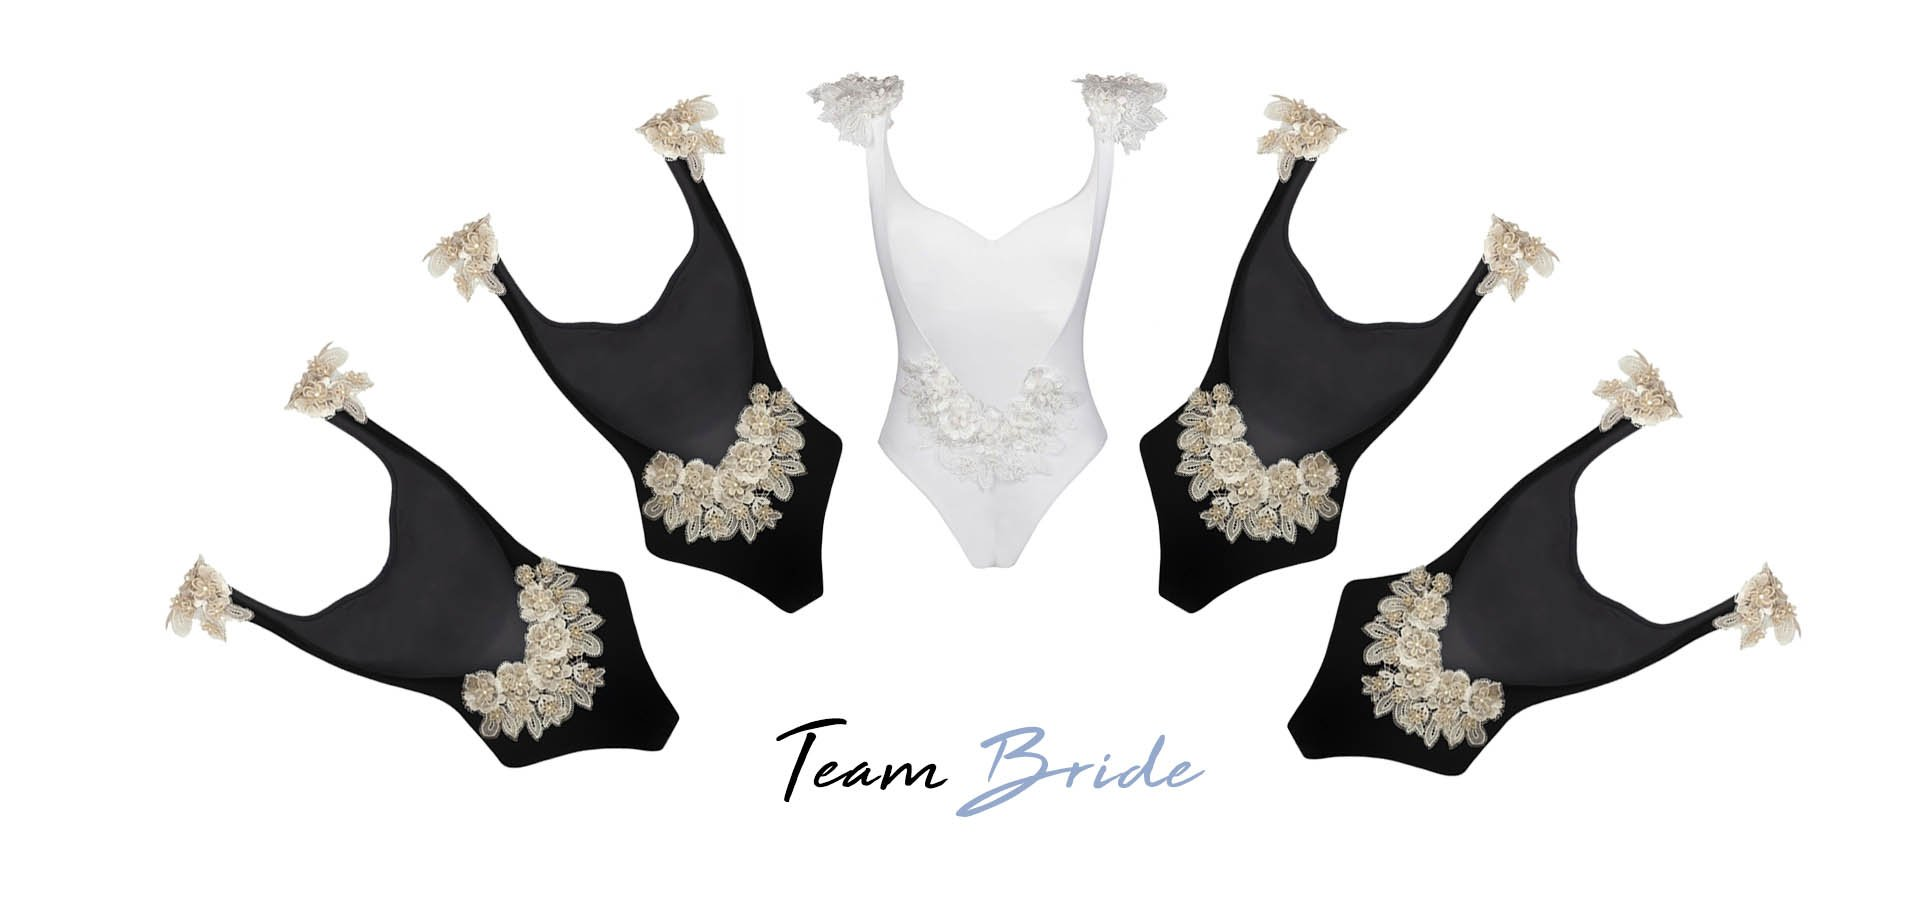 The perfect bachelorette party: a dream location and matching swimsuits for all the squad!